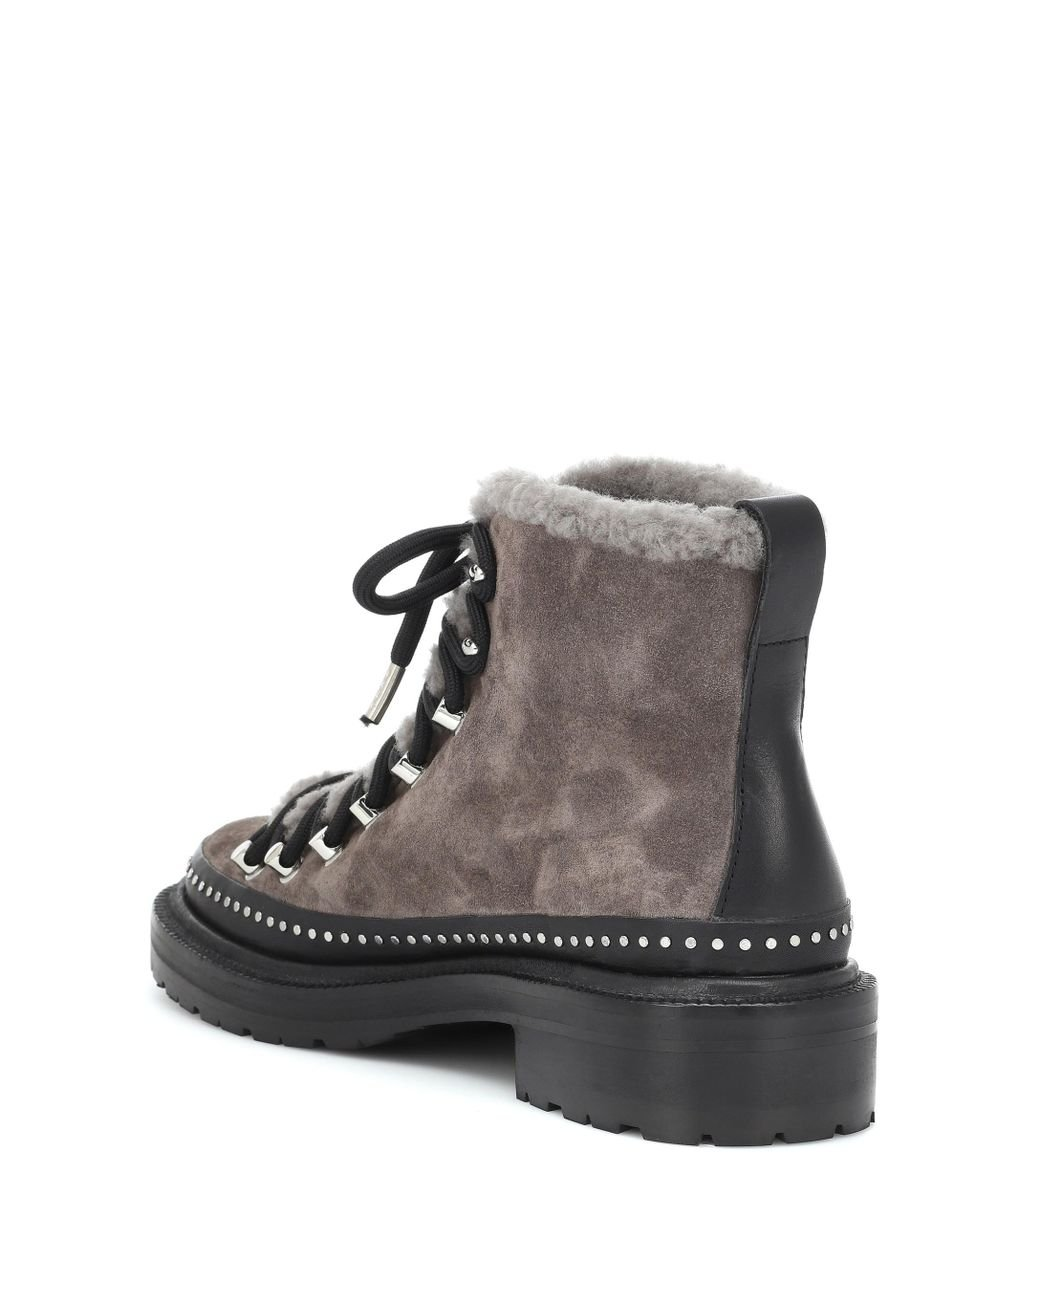 872fe71b503 Women's Gray Compass Suede Ankle Boots